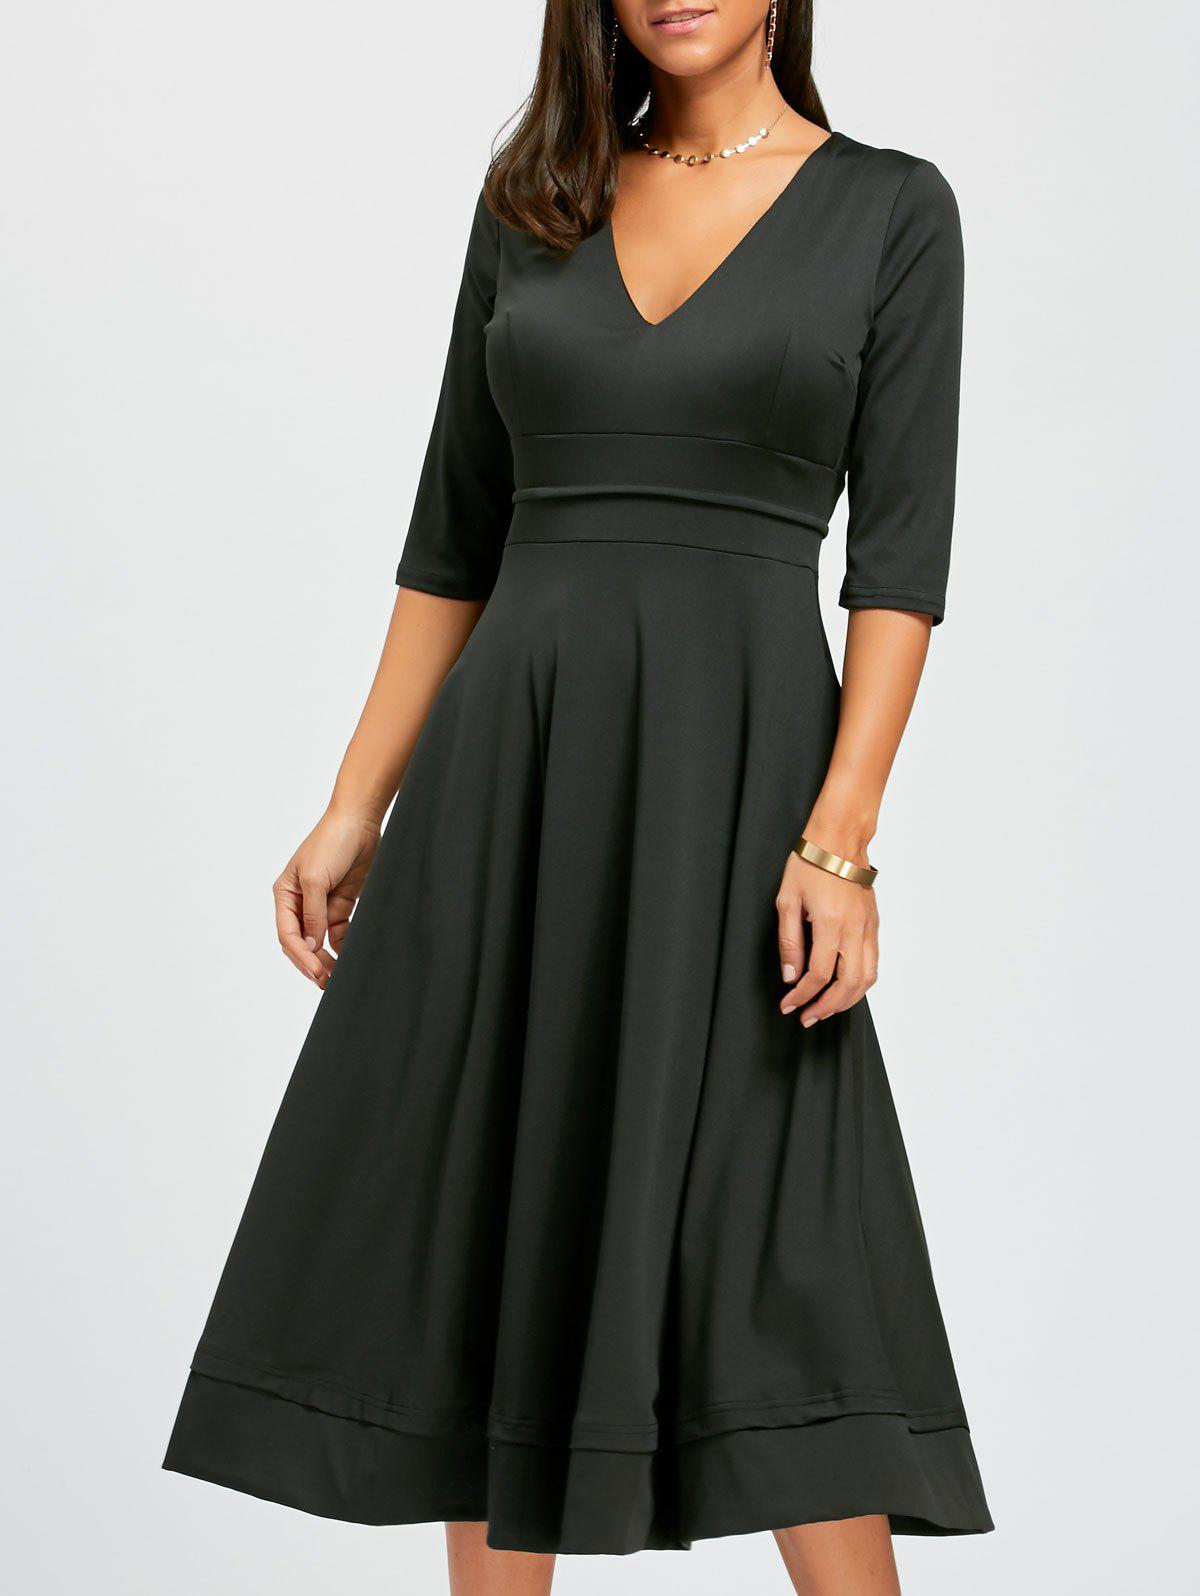 V Neck Fit and Flare Midi Dress - BLACK S